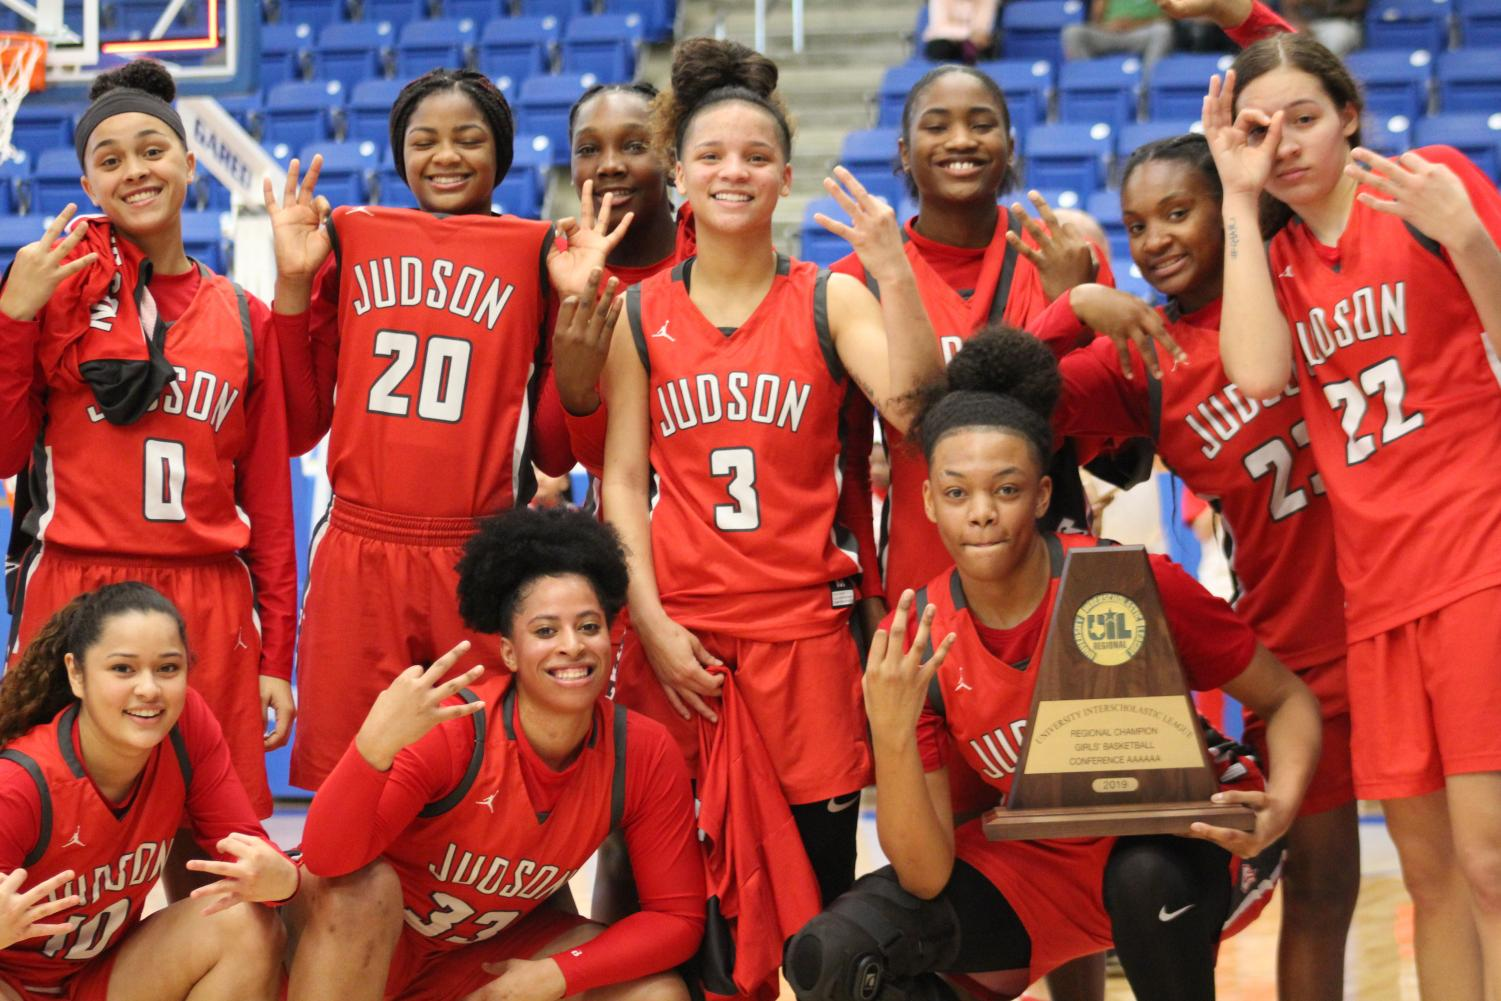 The Lady Rockets basketball team poses for the camera for their championship photo at Northside Sports Gym. The Lady Rockets beat Clark, 71-44, to advance to the State Tournament for the third consecutive season.